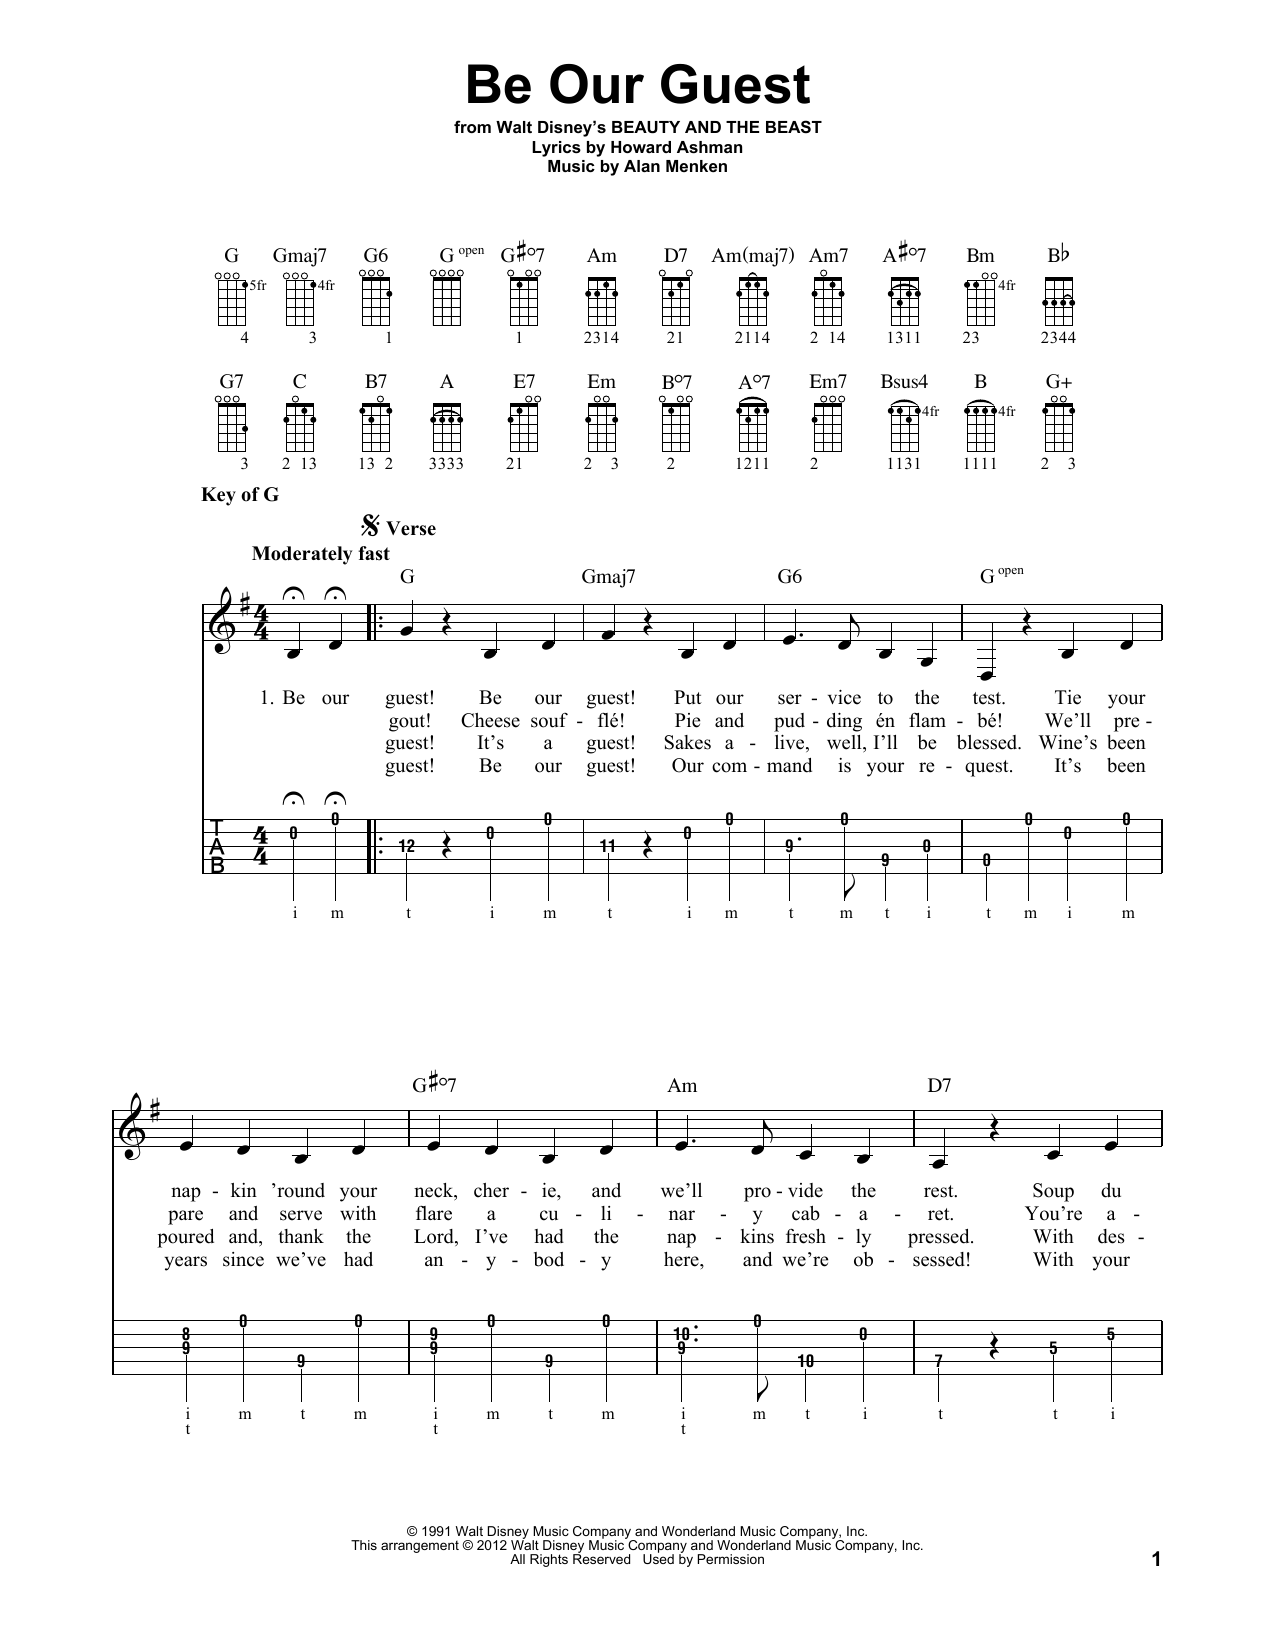 Be Our Guest Sheet Music